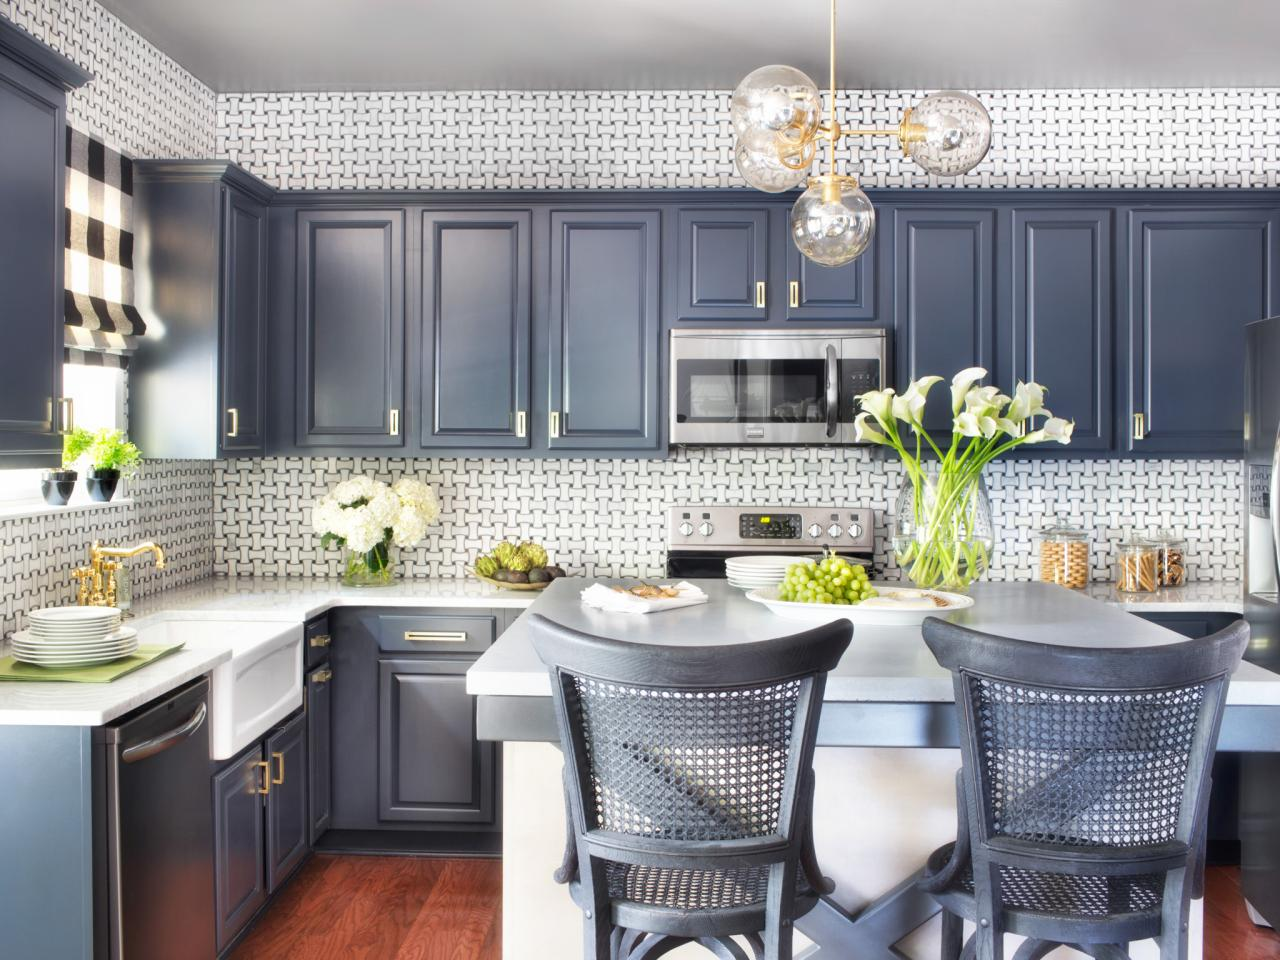 how to refinish cabinets like a pro - Kitchen Cabinet Refacing Ideas